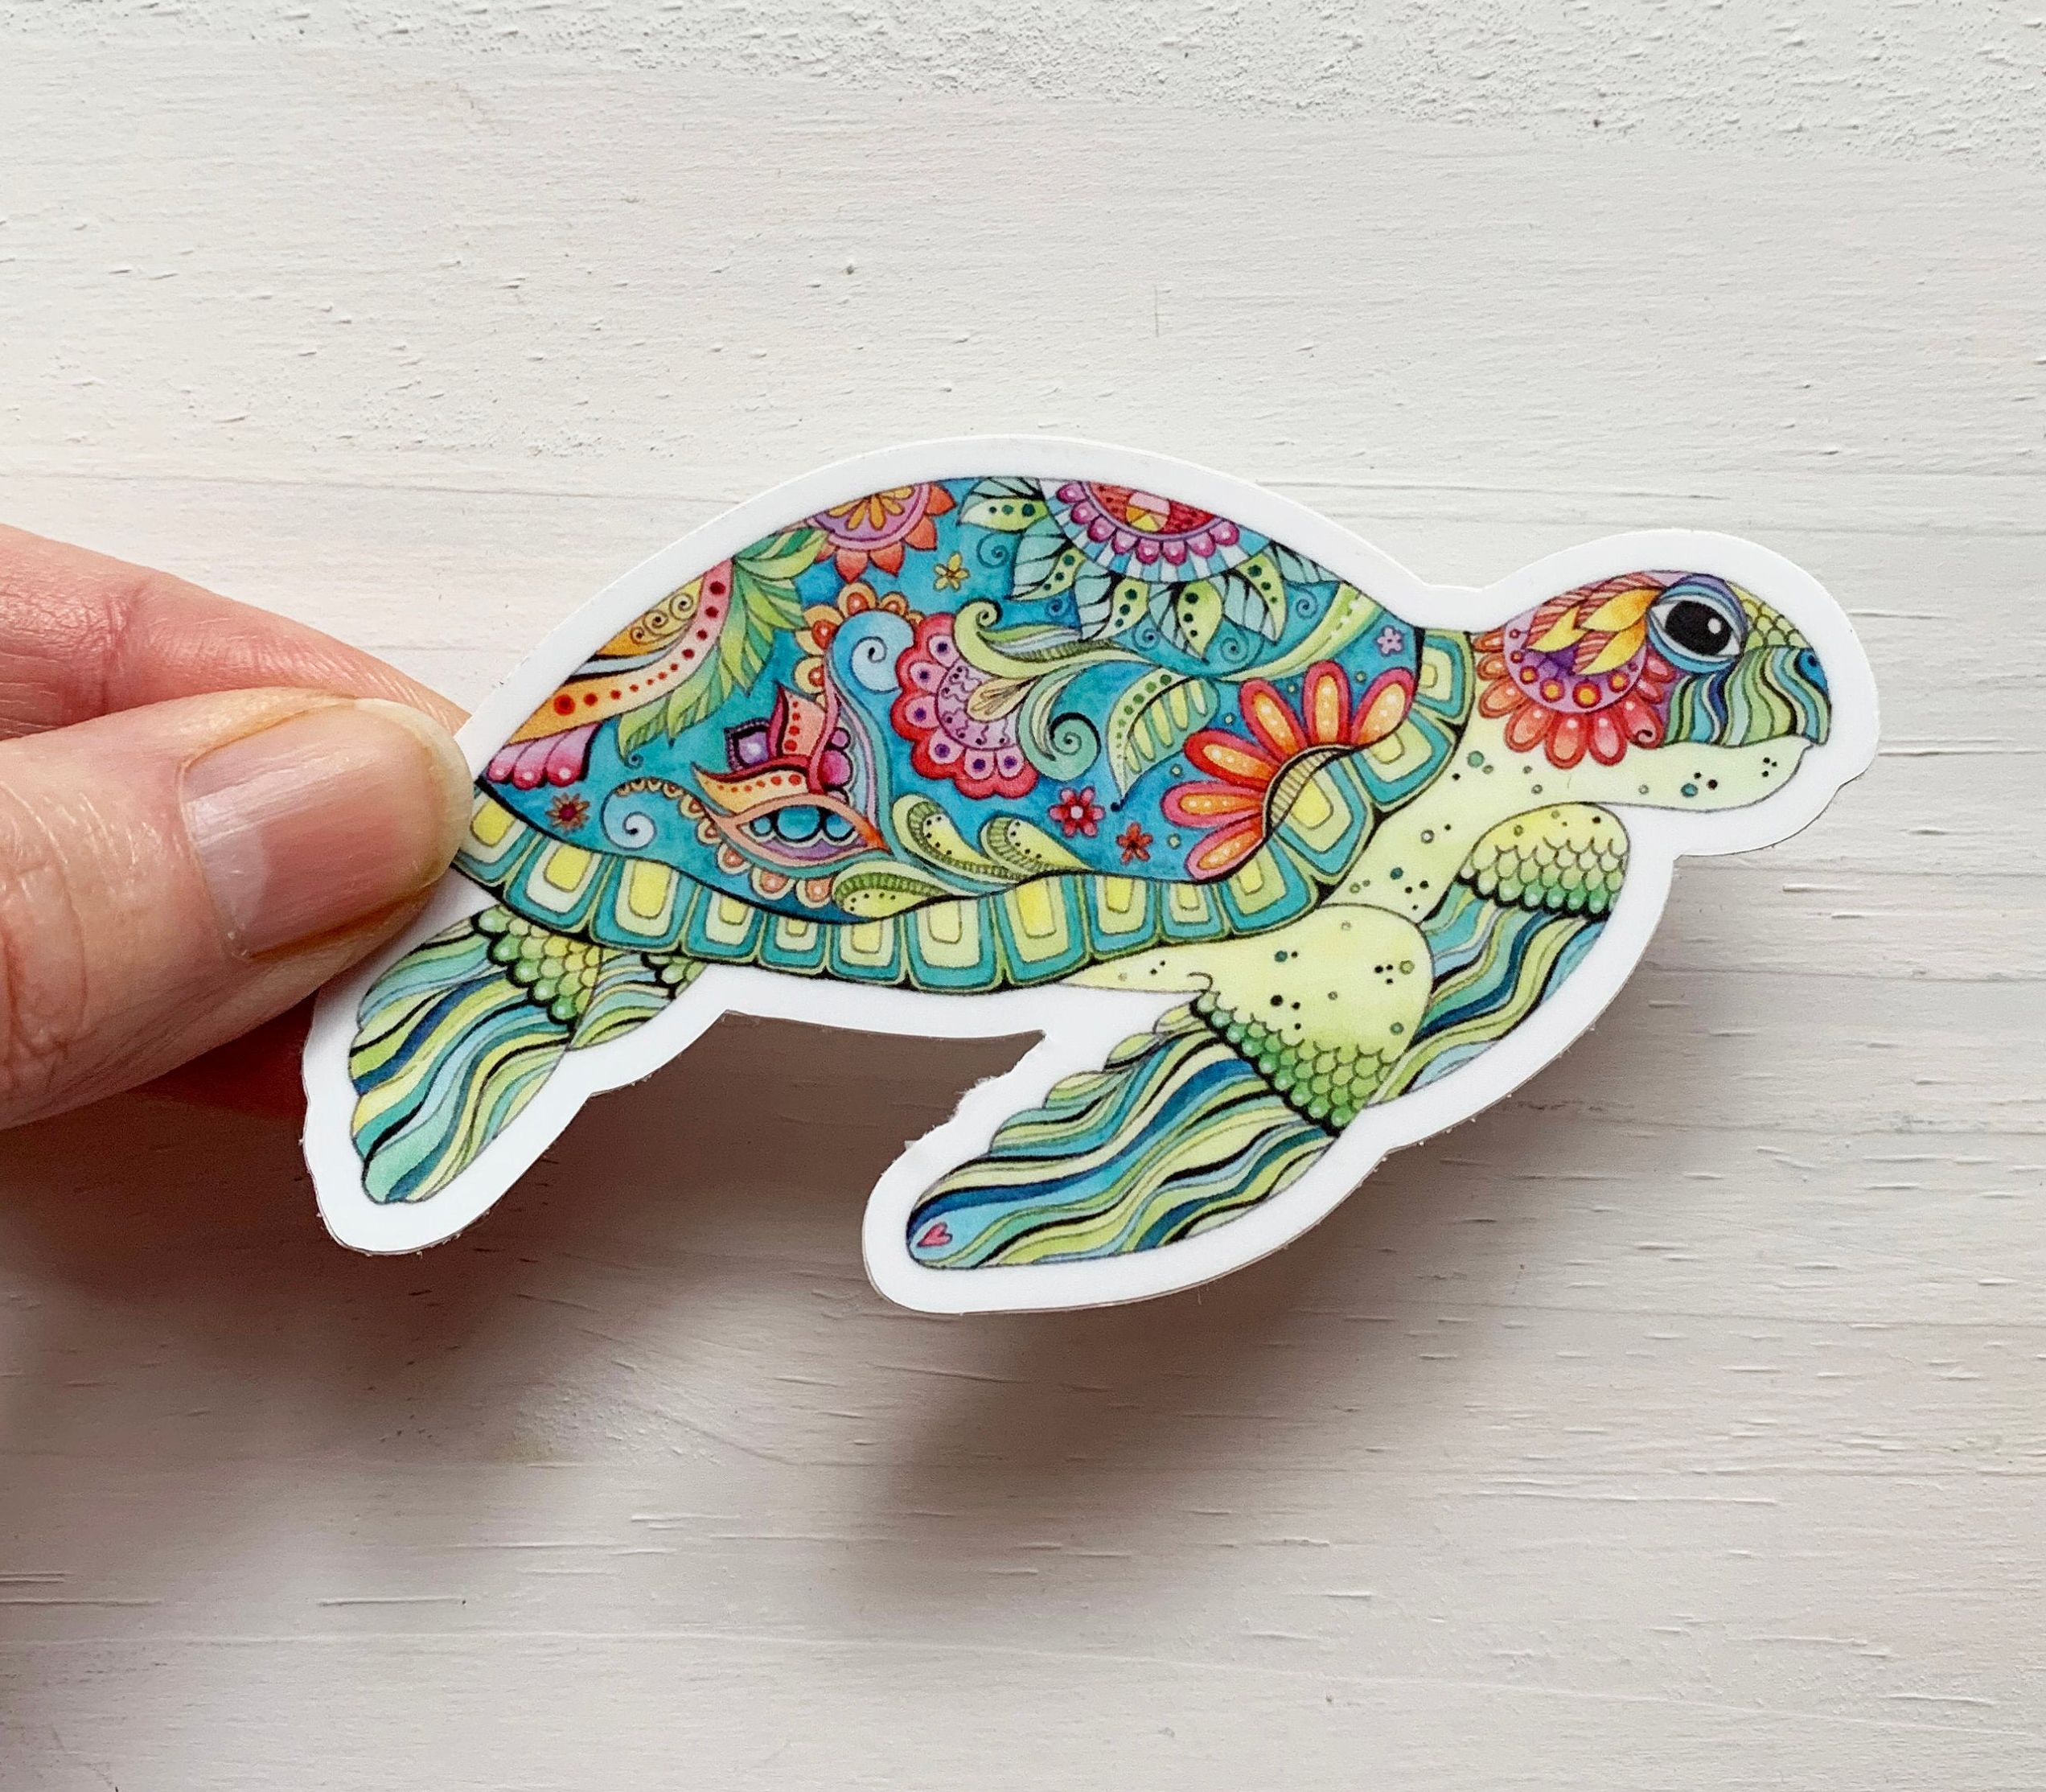 Pin By Christina Bustamante On Artisan Jewellery And Gifts Sea Turtle Decal Sea Turtle Painting Turtle Watercolor [ 2228 x 2544 Pixel ]